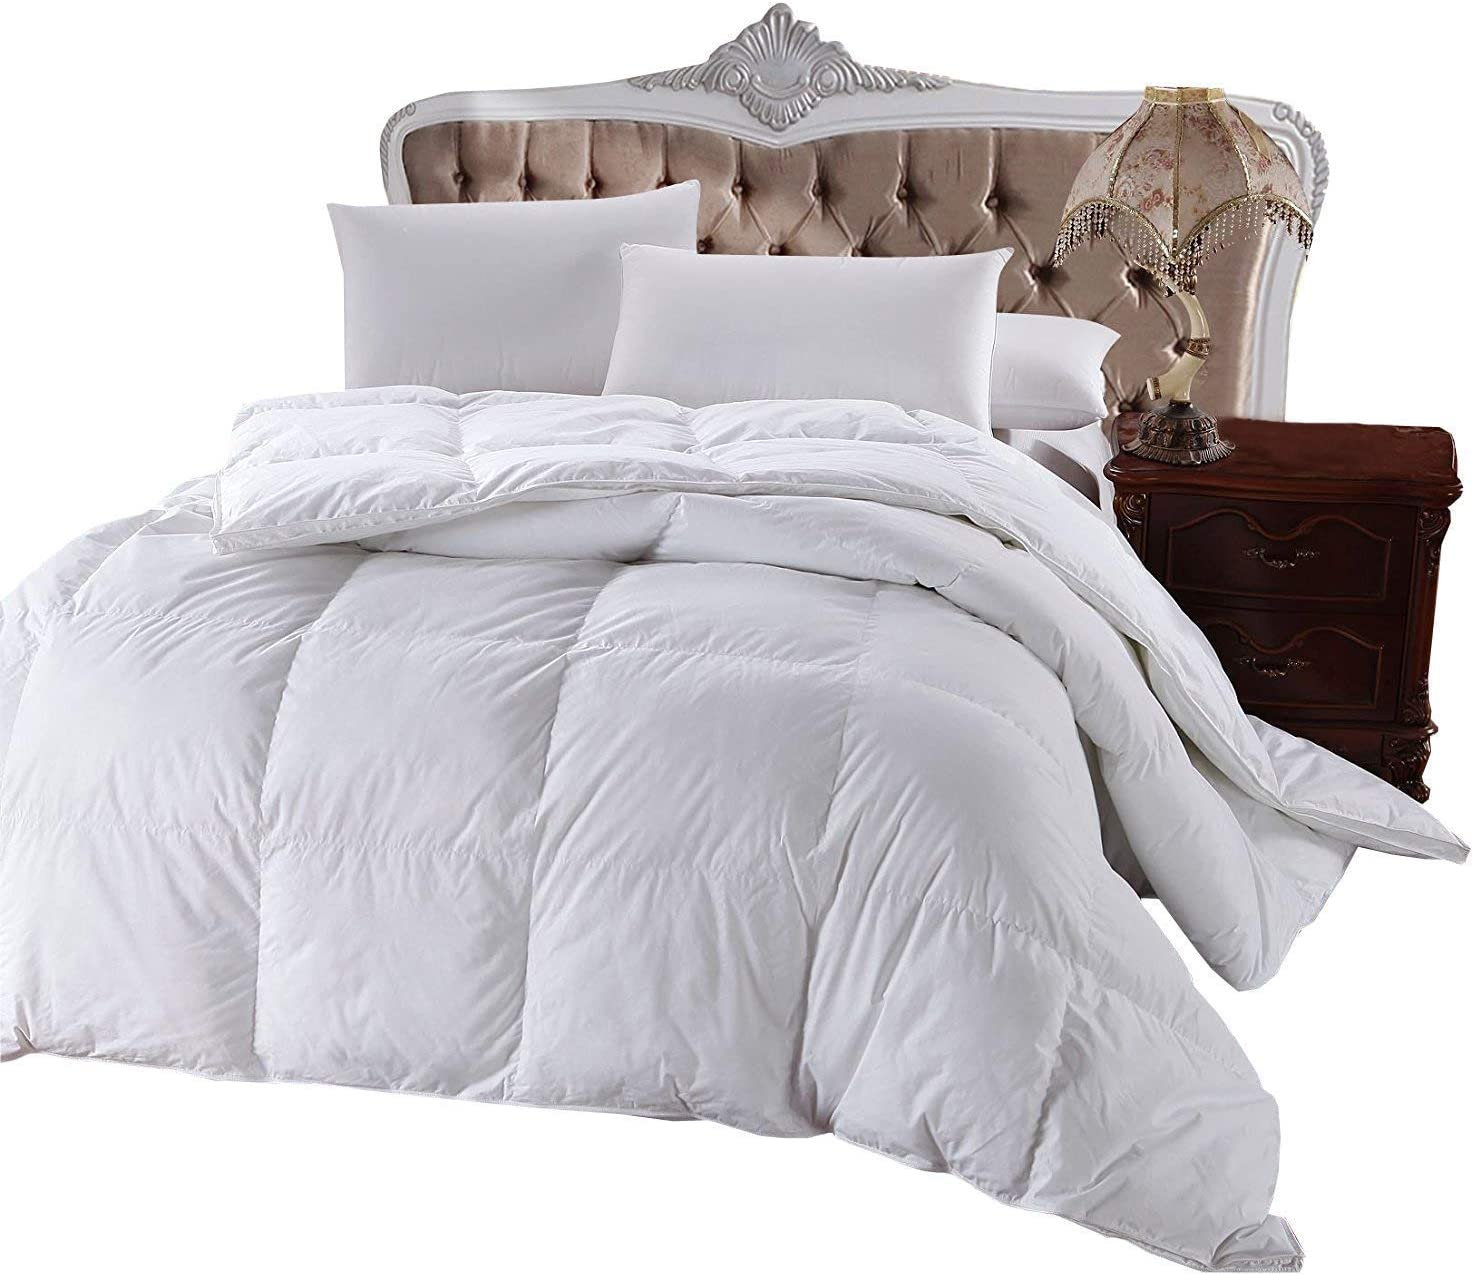 Royal Hotel's 300 Thread Count King Size Goose Down Alternative Comforter, Overfilled Comforter, Duvet Insert 100% Cotton Shell - 750FP - 86Oz - Solid White, King: Home & Kitchen